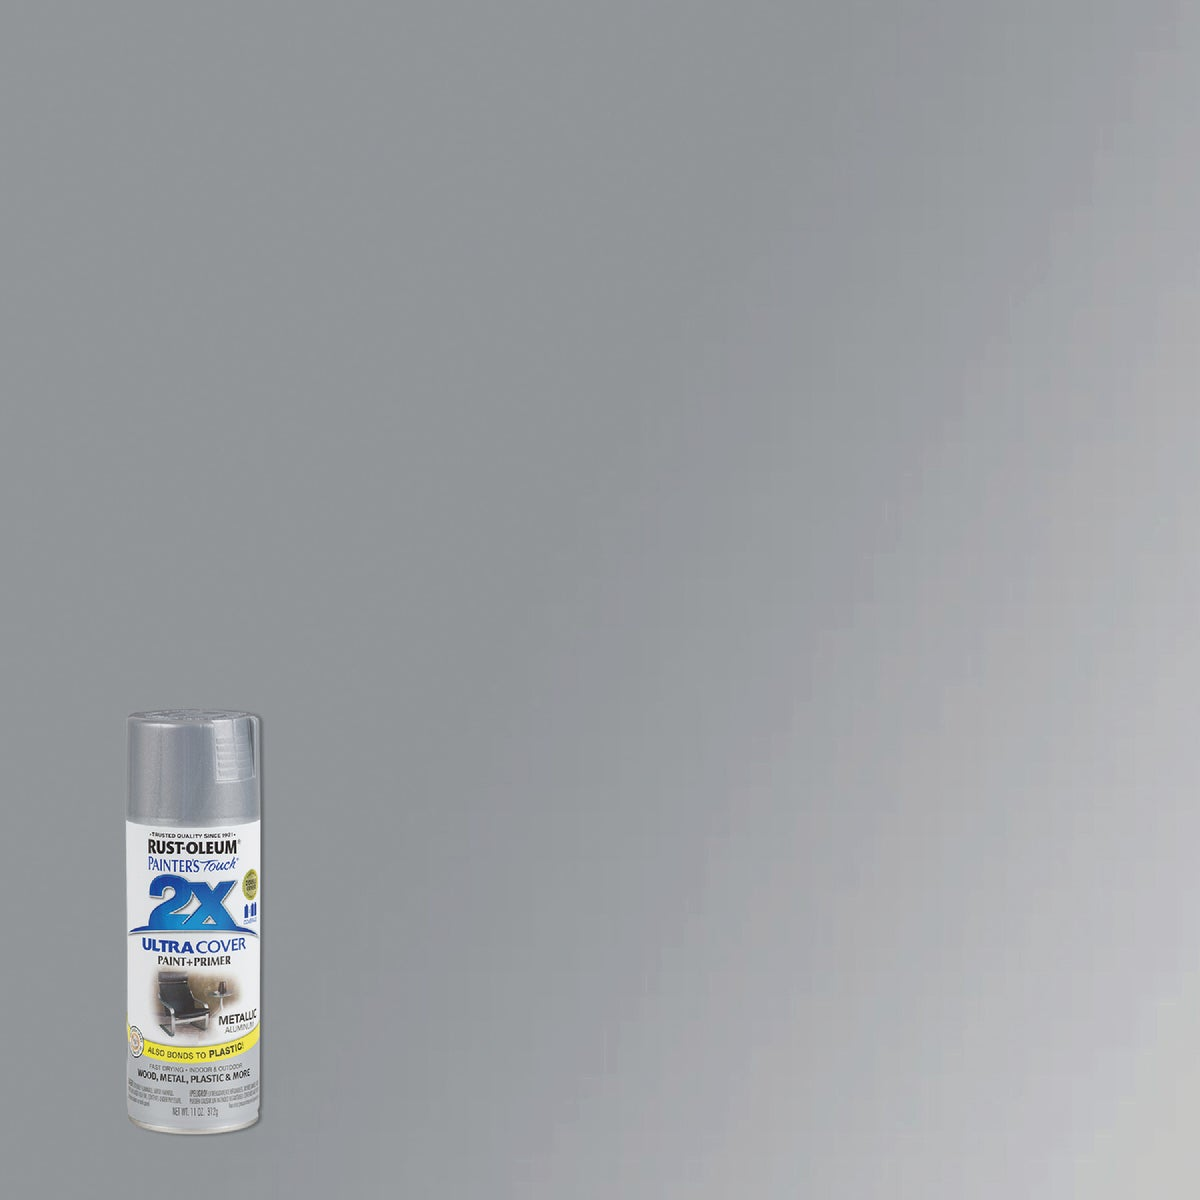 ALUMINUM SPRAY PAINT - 249128 by Rustoleum